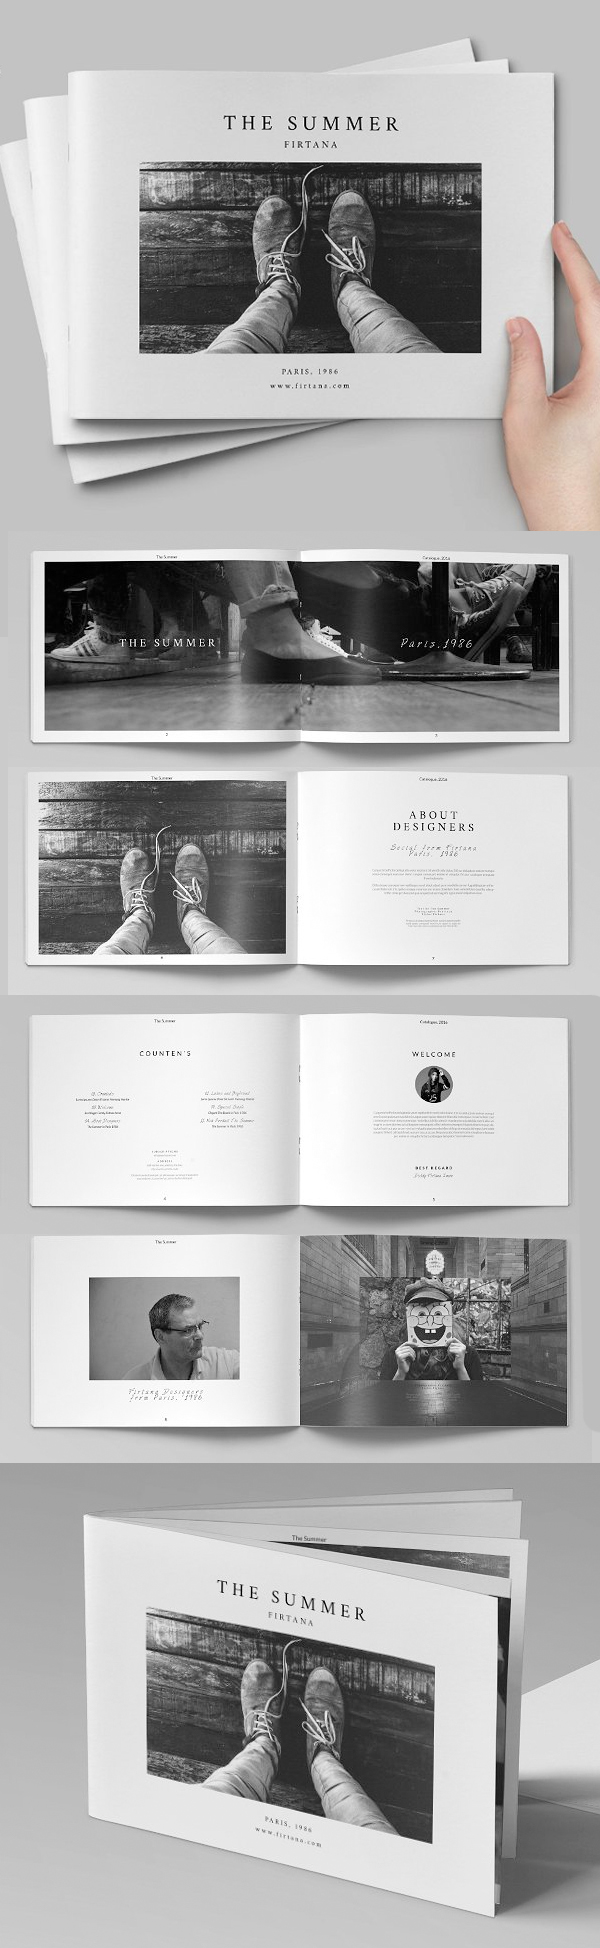 100 Professional Corporate Brochure Templates - 32